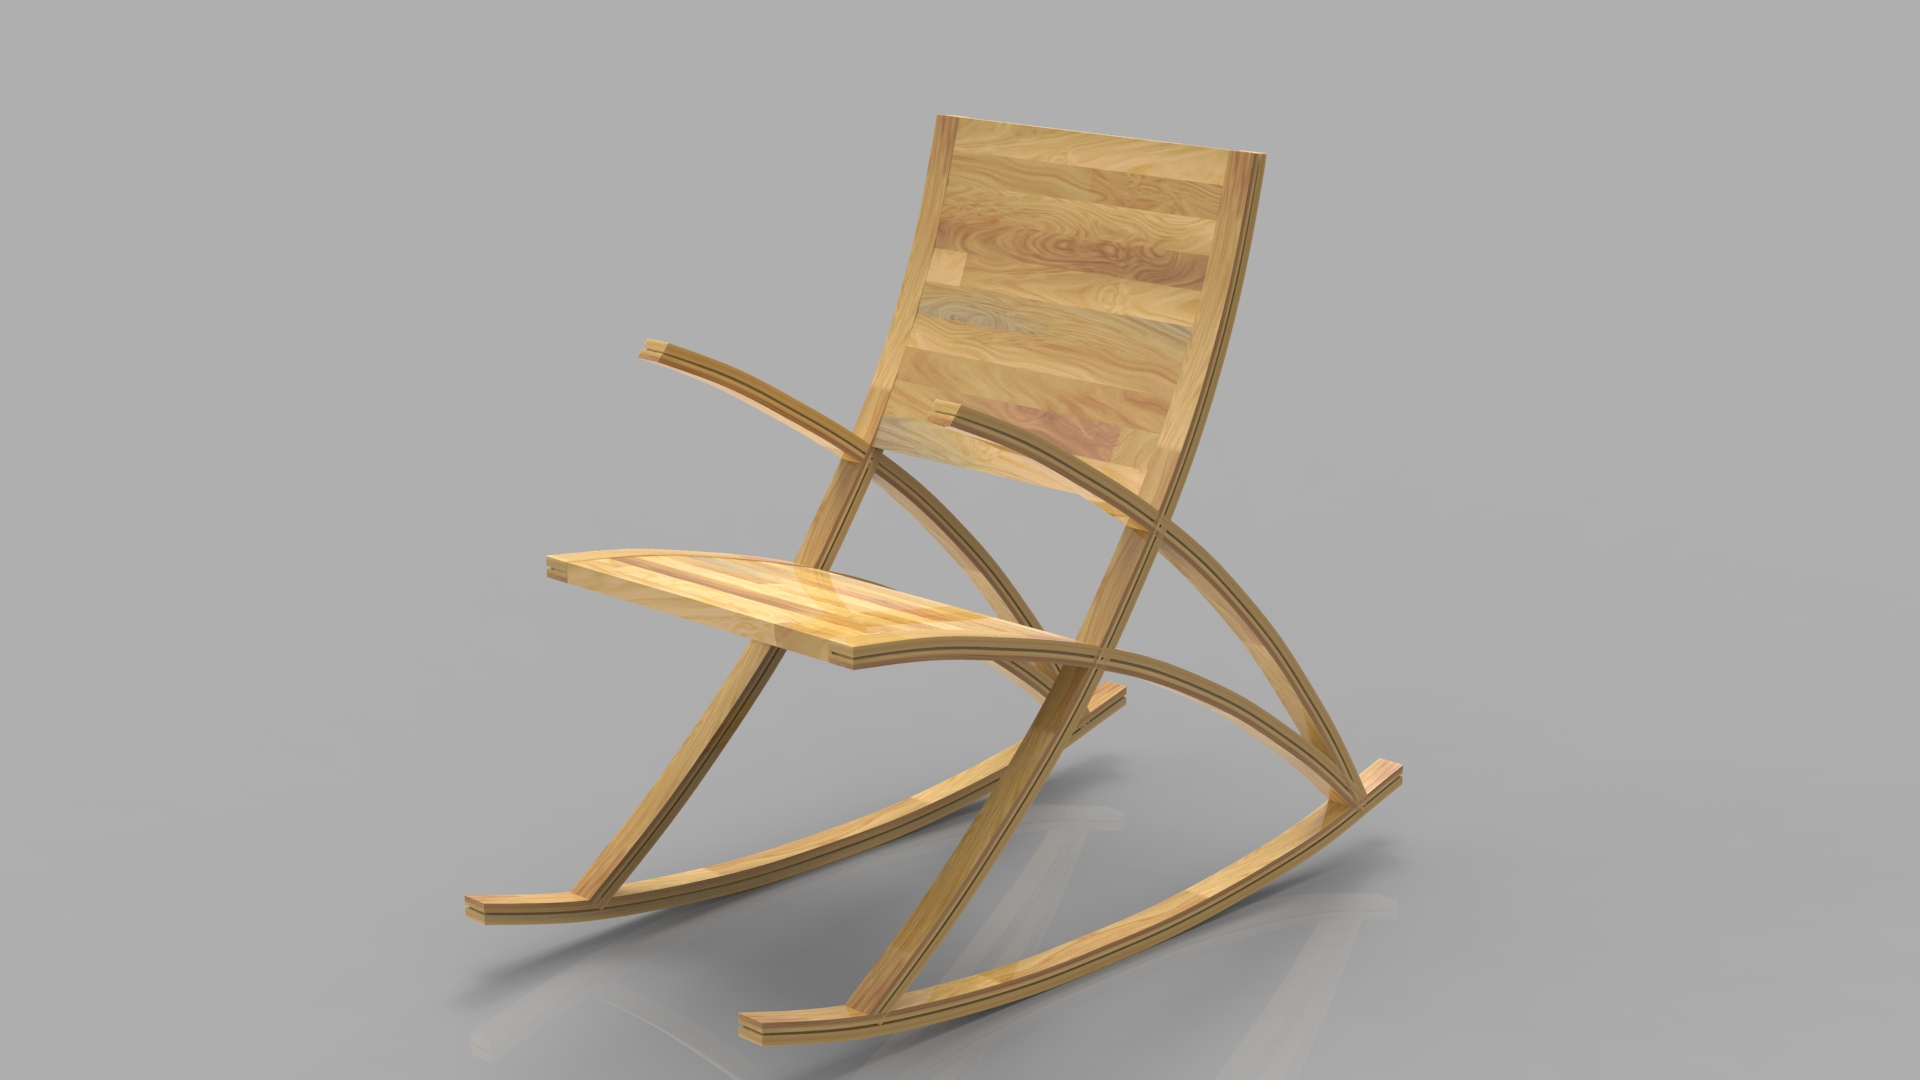 Rocking Wooden Chair Collection by 3DElement